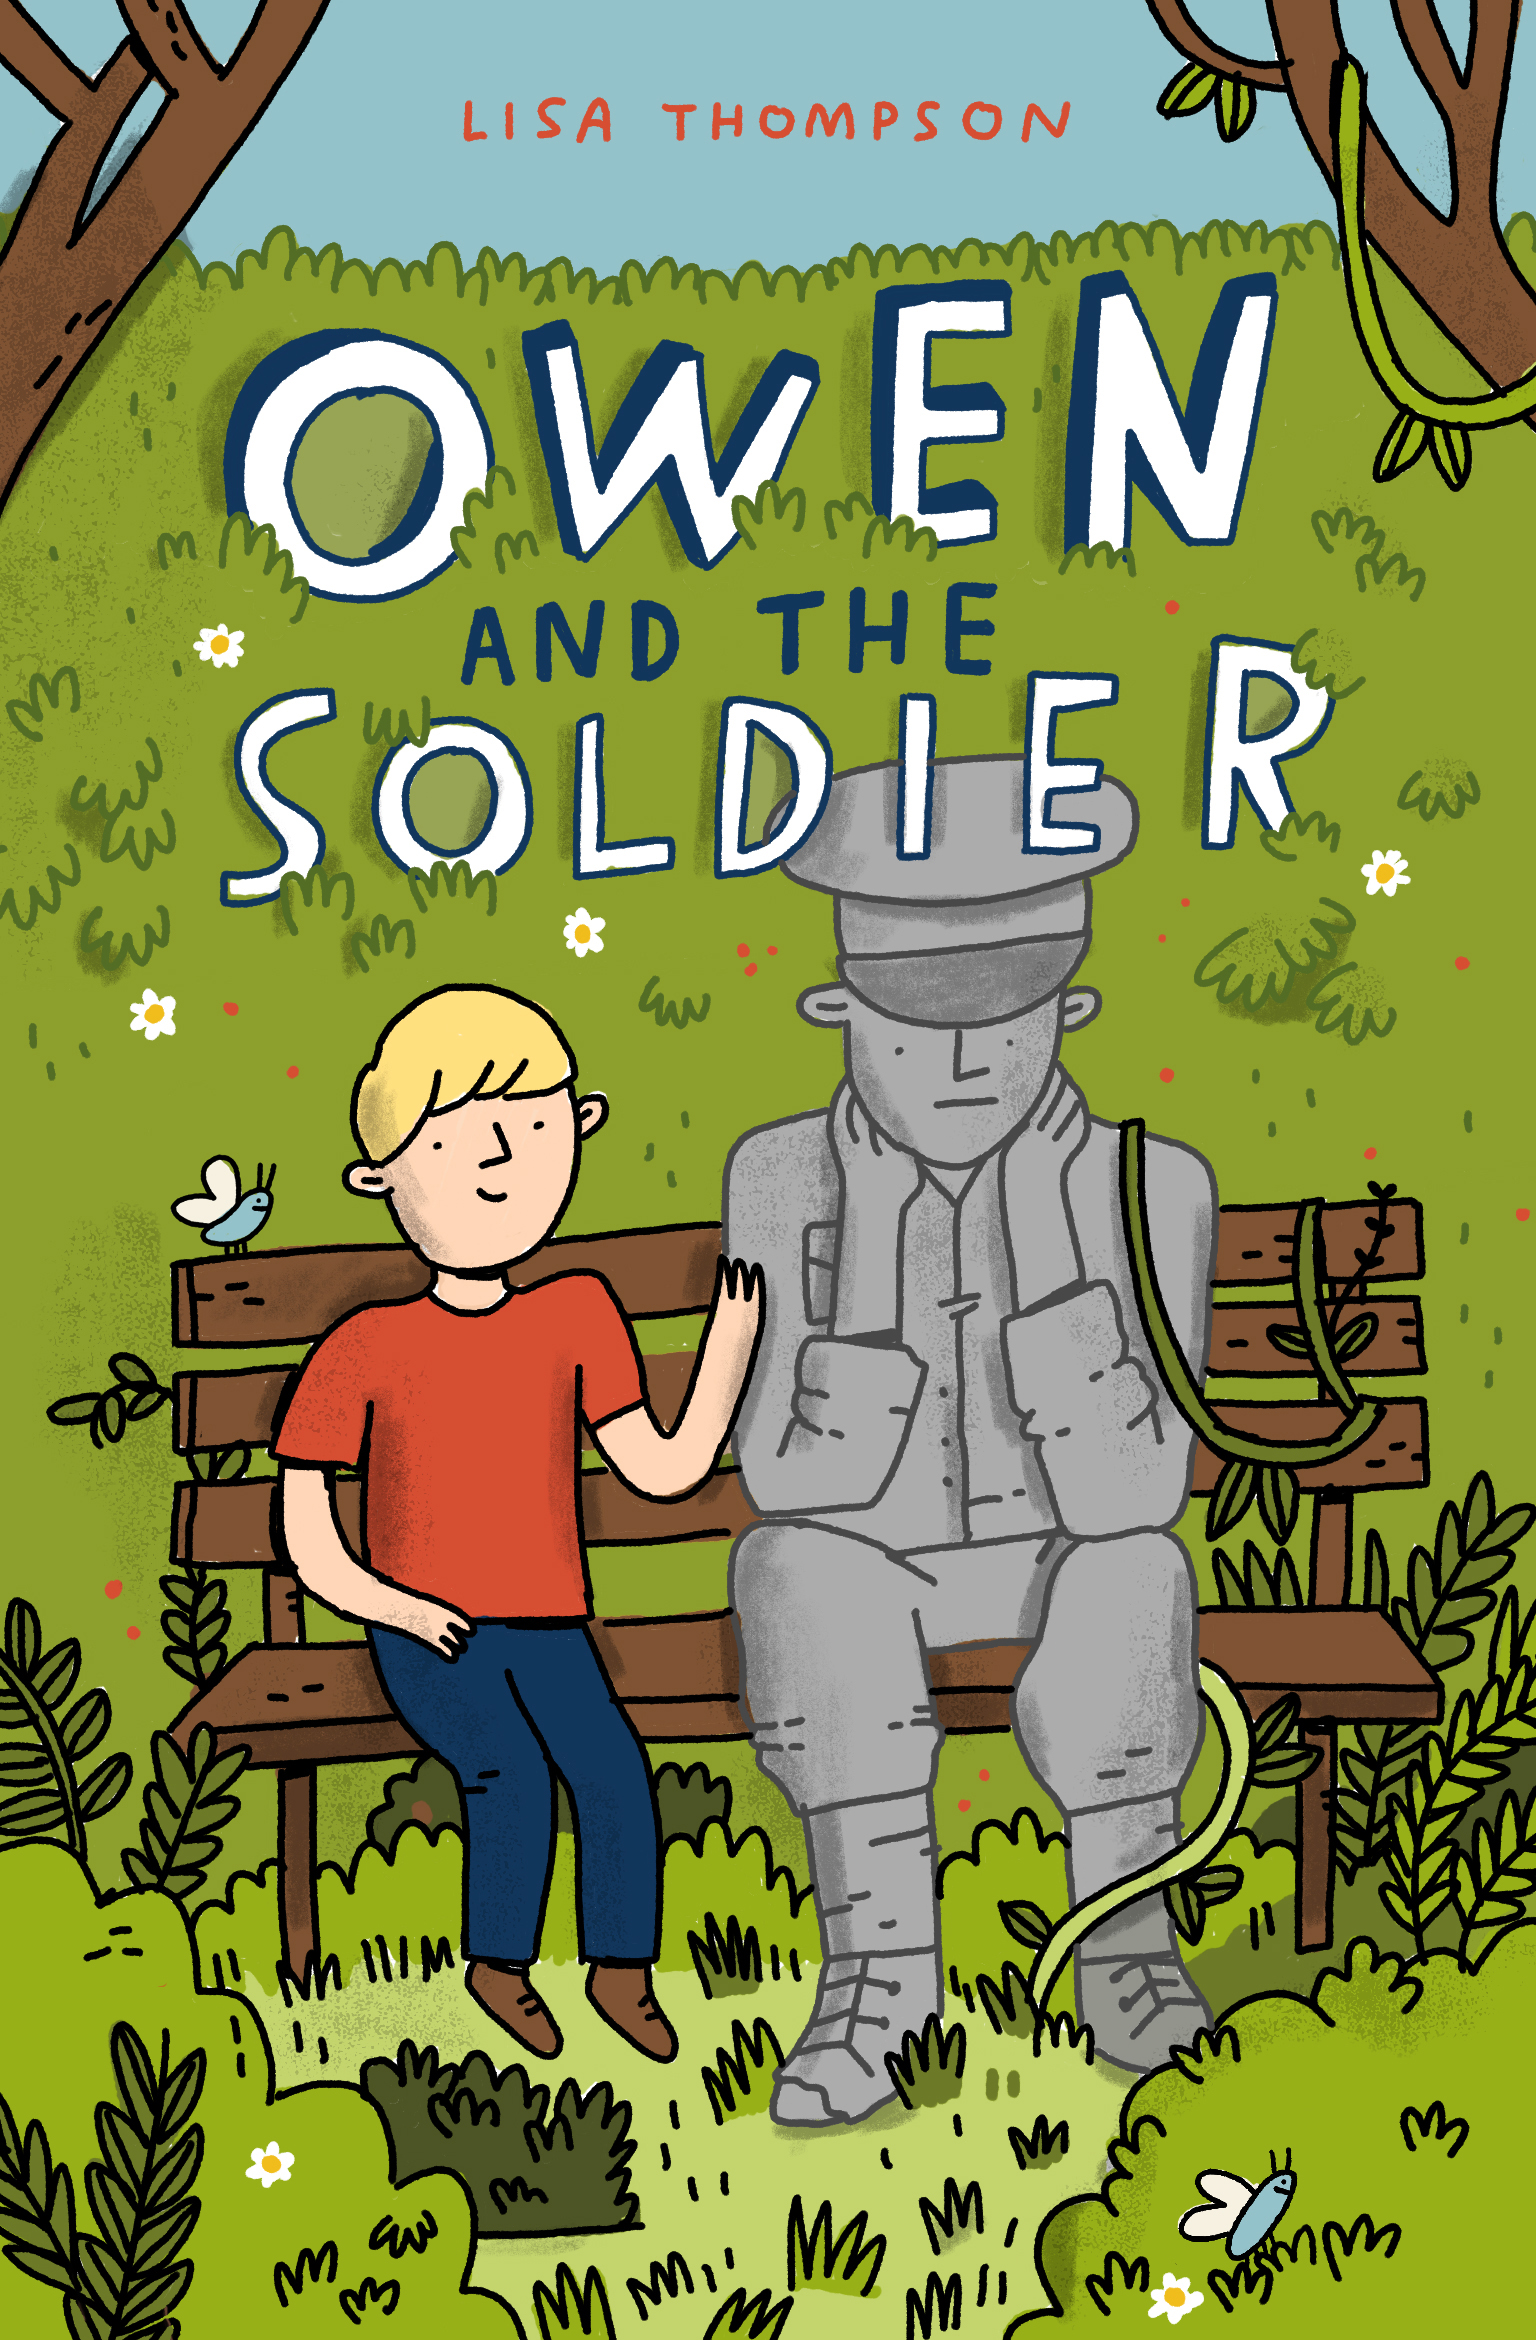 Cover Reveal & Book Giveaway! Owen and the Soldier: Lisa